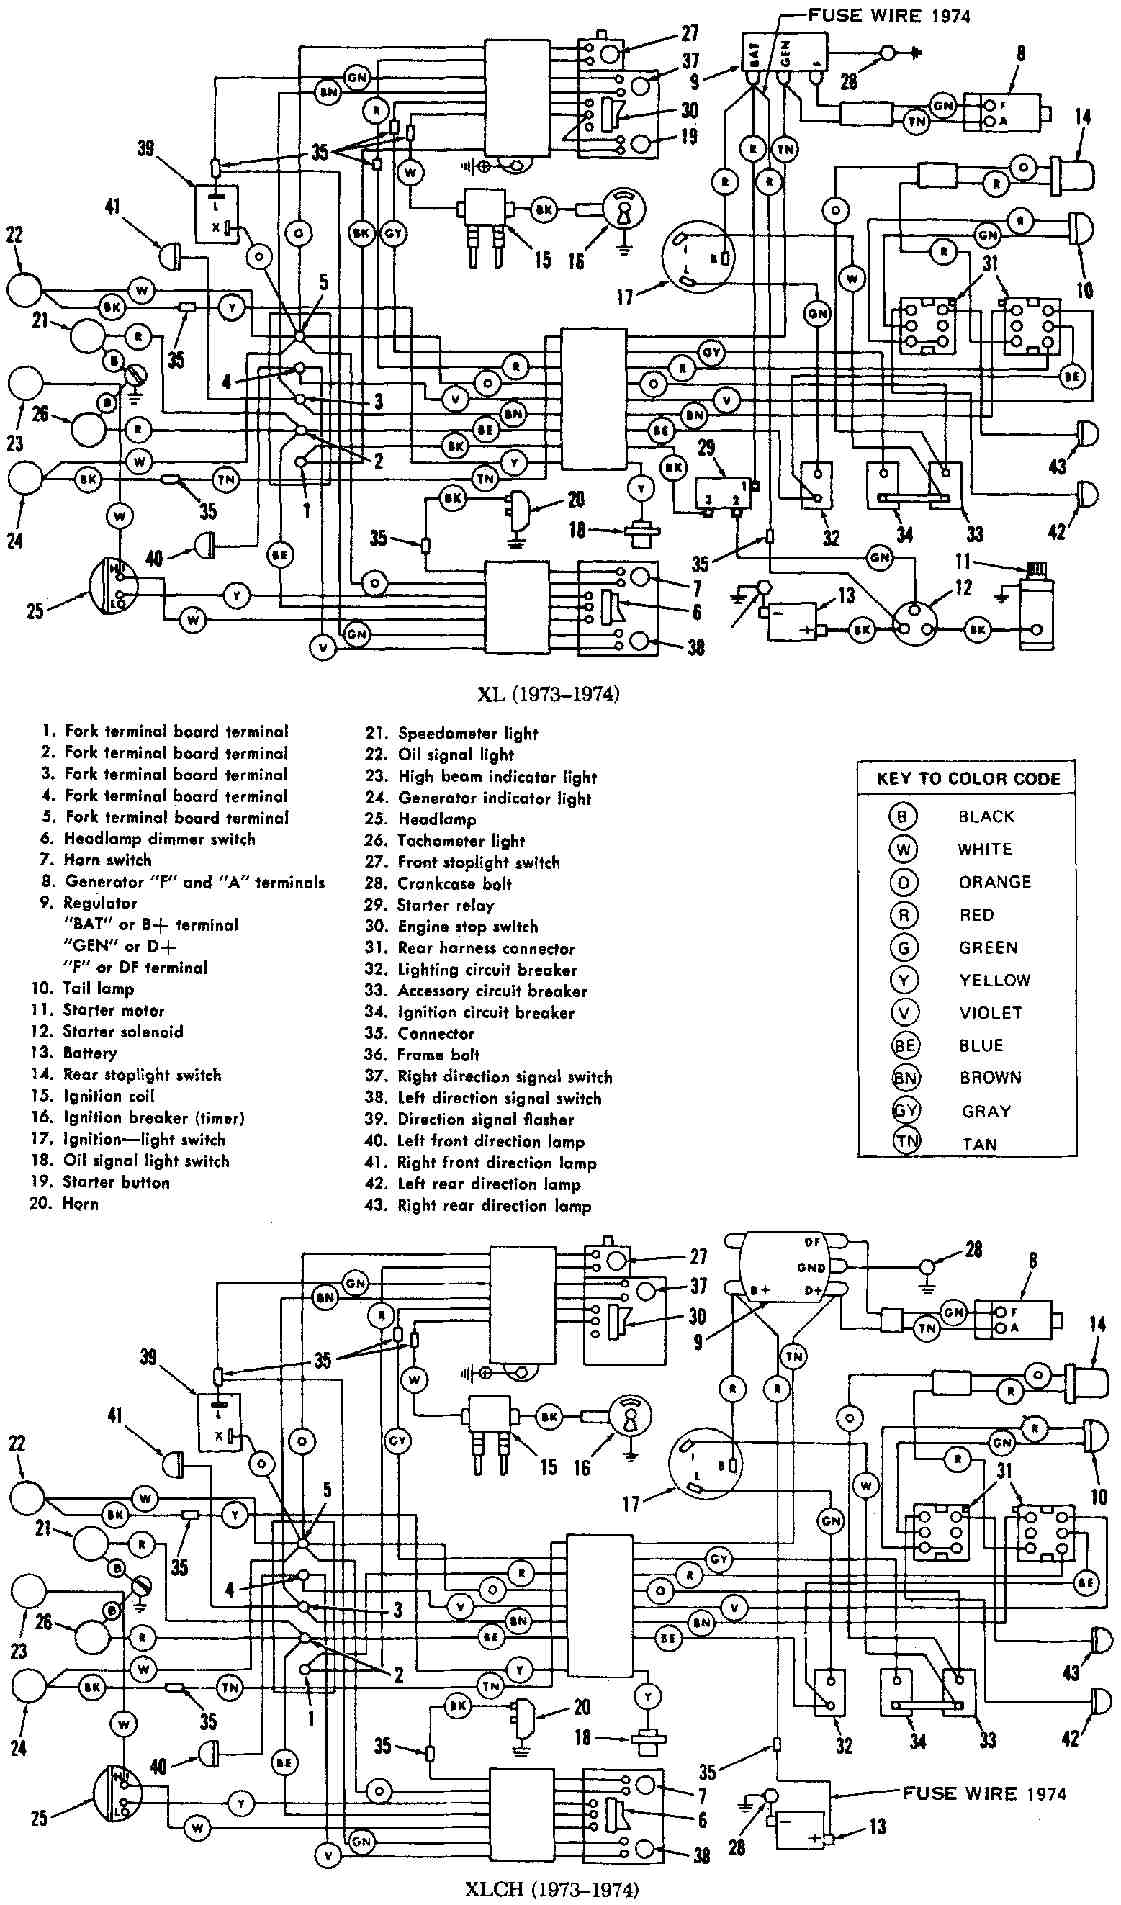 hight resolution of 1972 harley davidson wiring diagram simple wiring schema harley davidson drivetrain diagram 1972 harley davidson wiring diagram